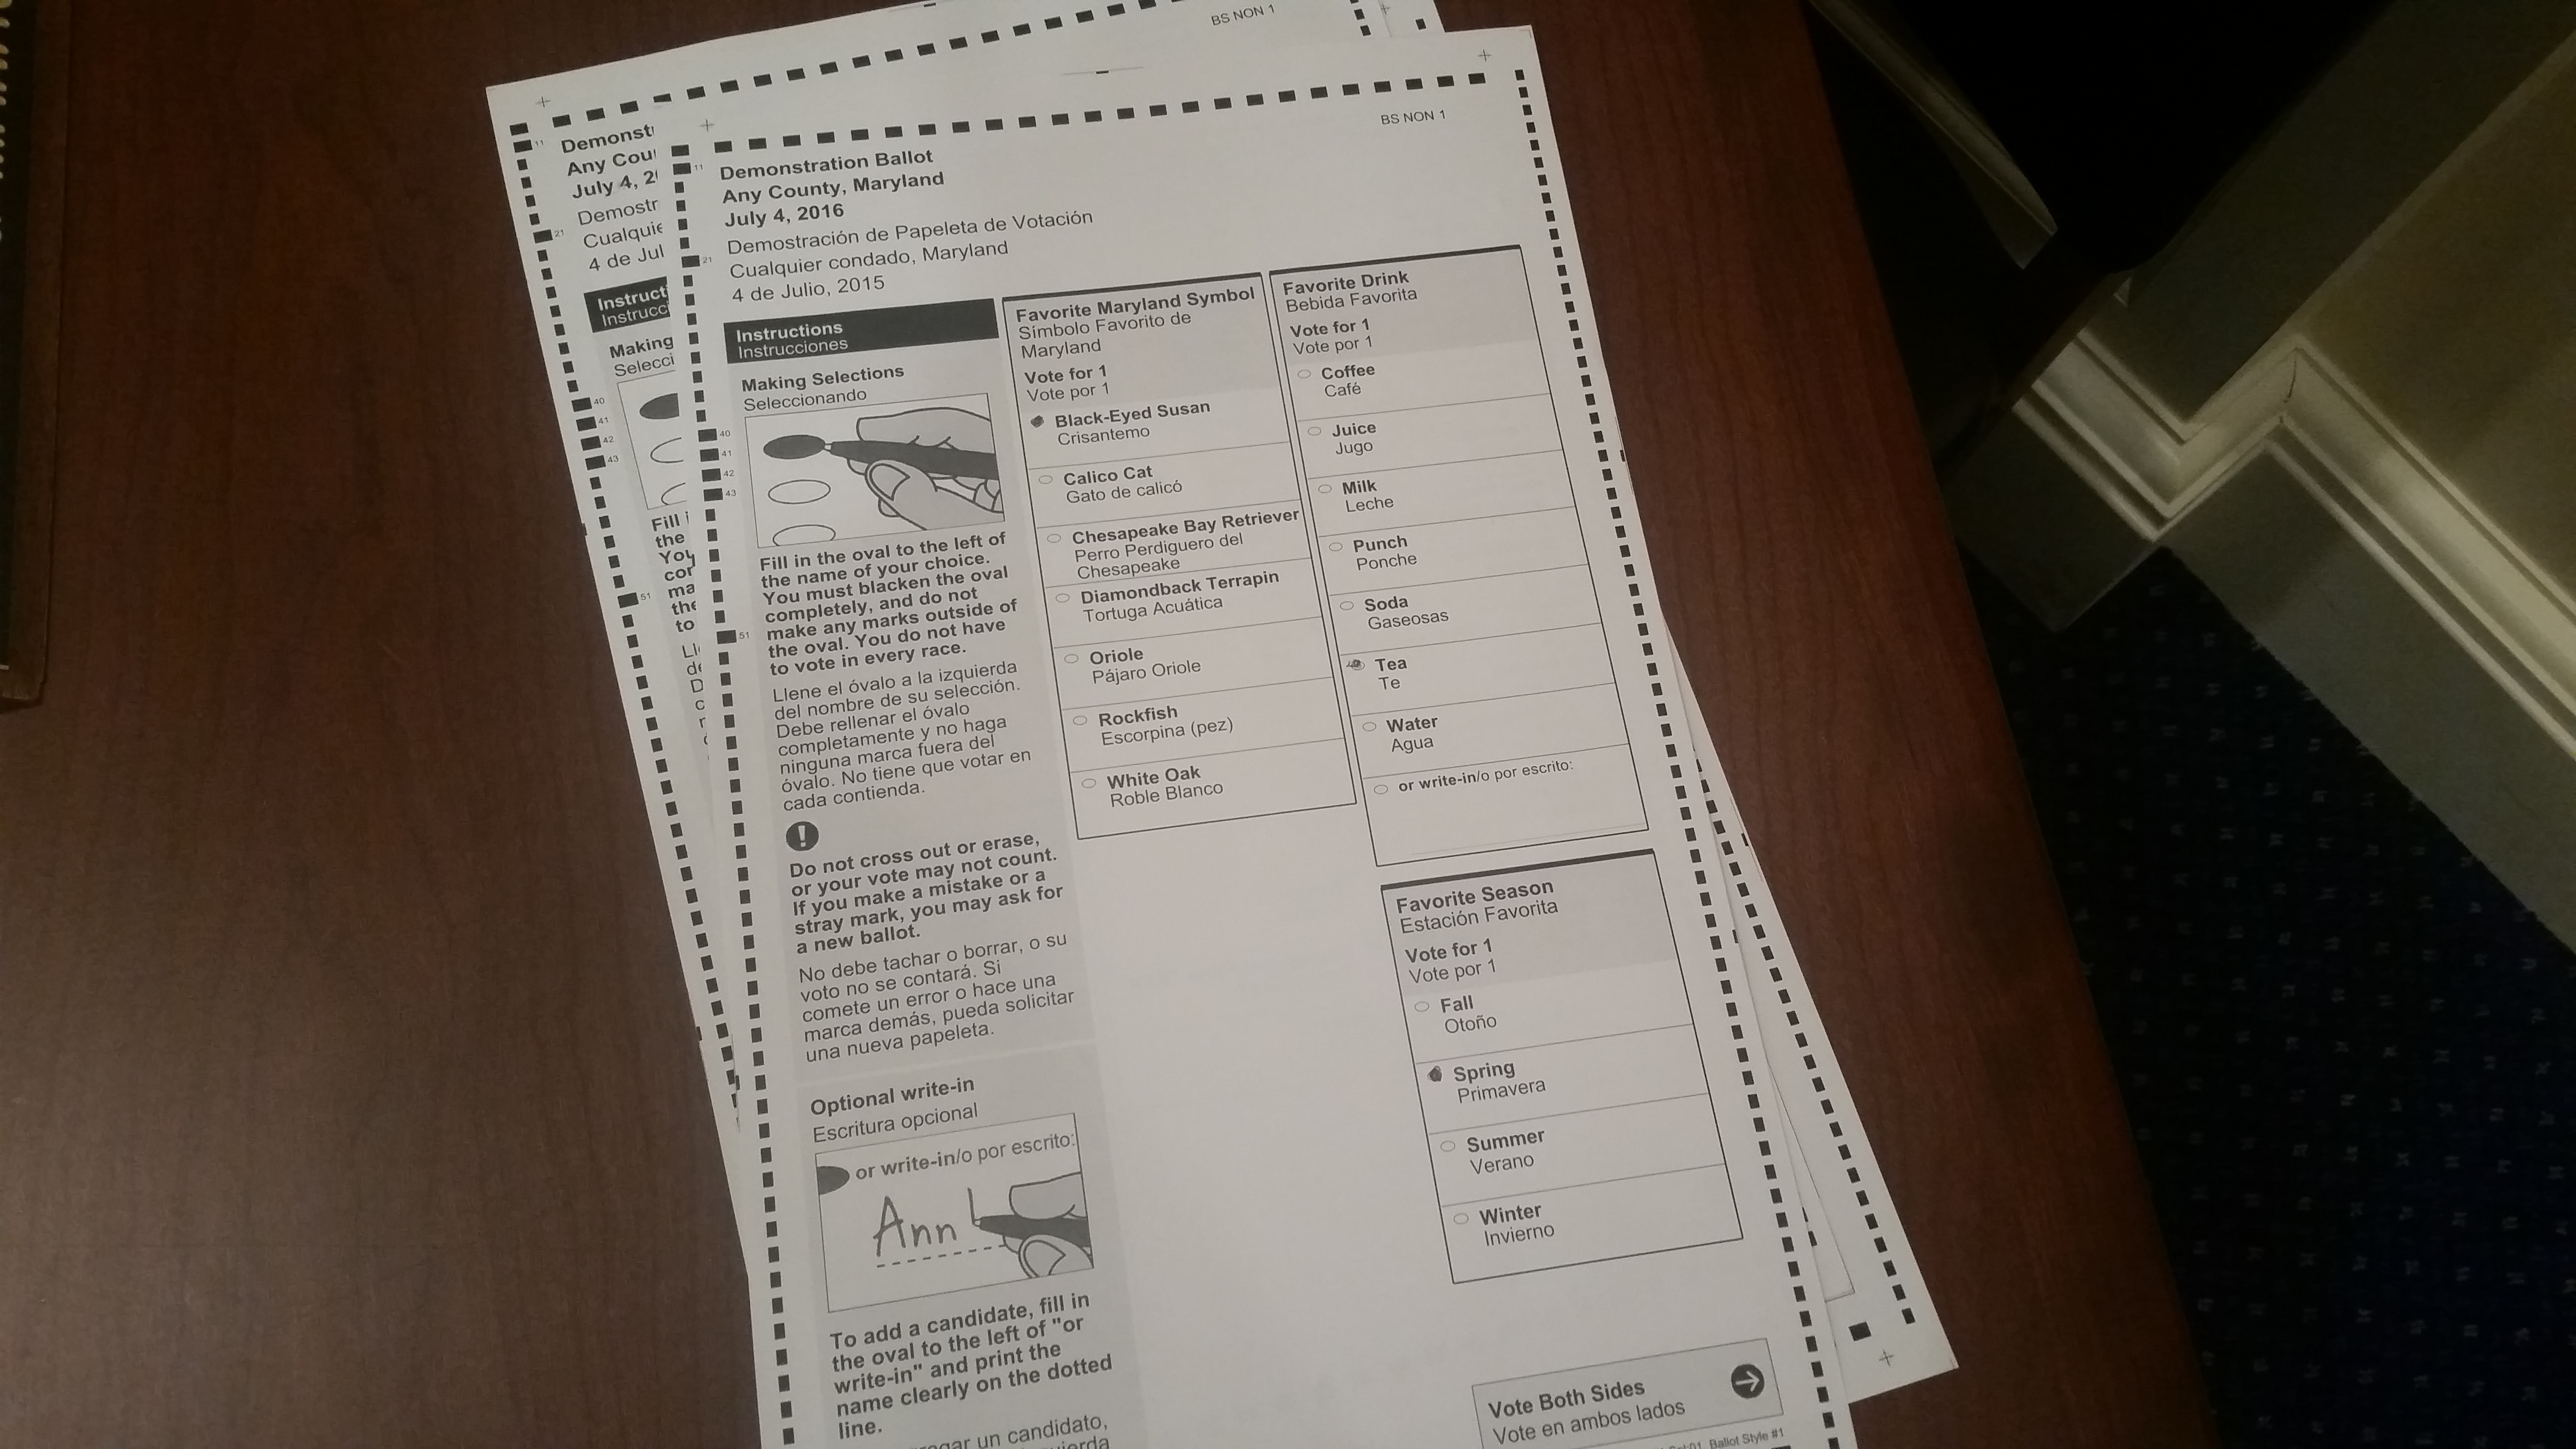 In April 2016, Maryland will switch from touch-screen ballots to paper ones like this. The Maryland State Board of Elections showed samples of the new ballot in Annapolis on Friday, January 29, 2016. (Capital News Service photo by Rachel Bluth.)